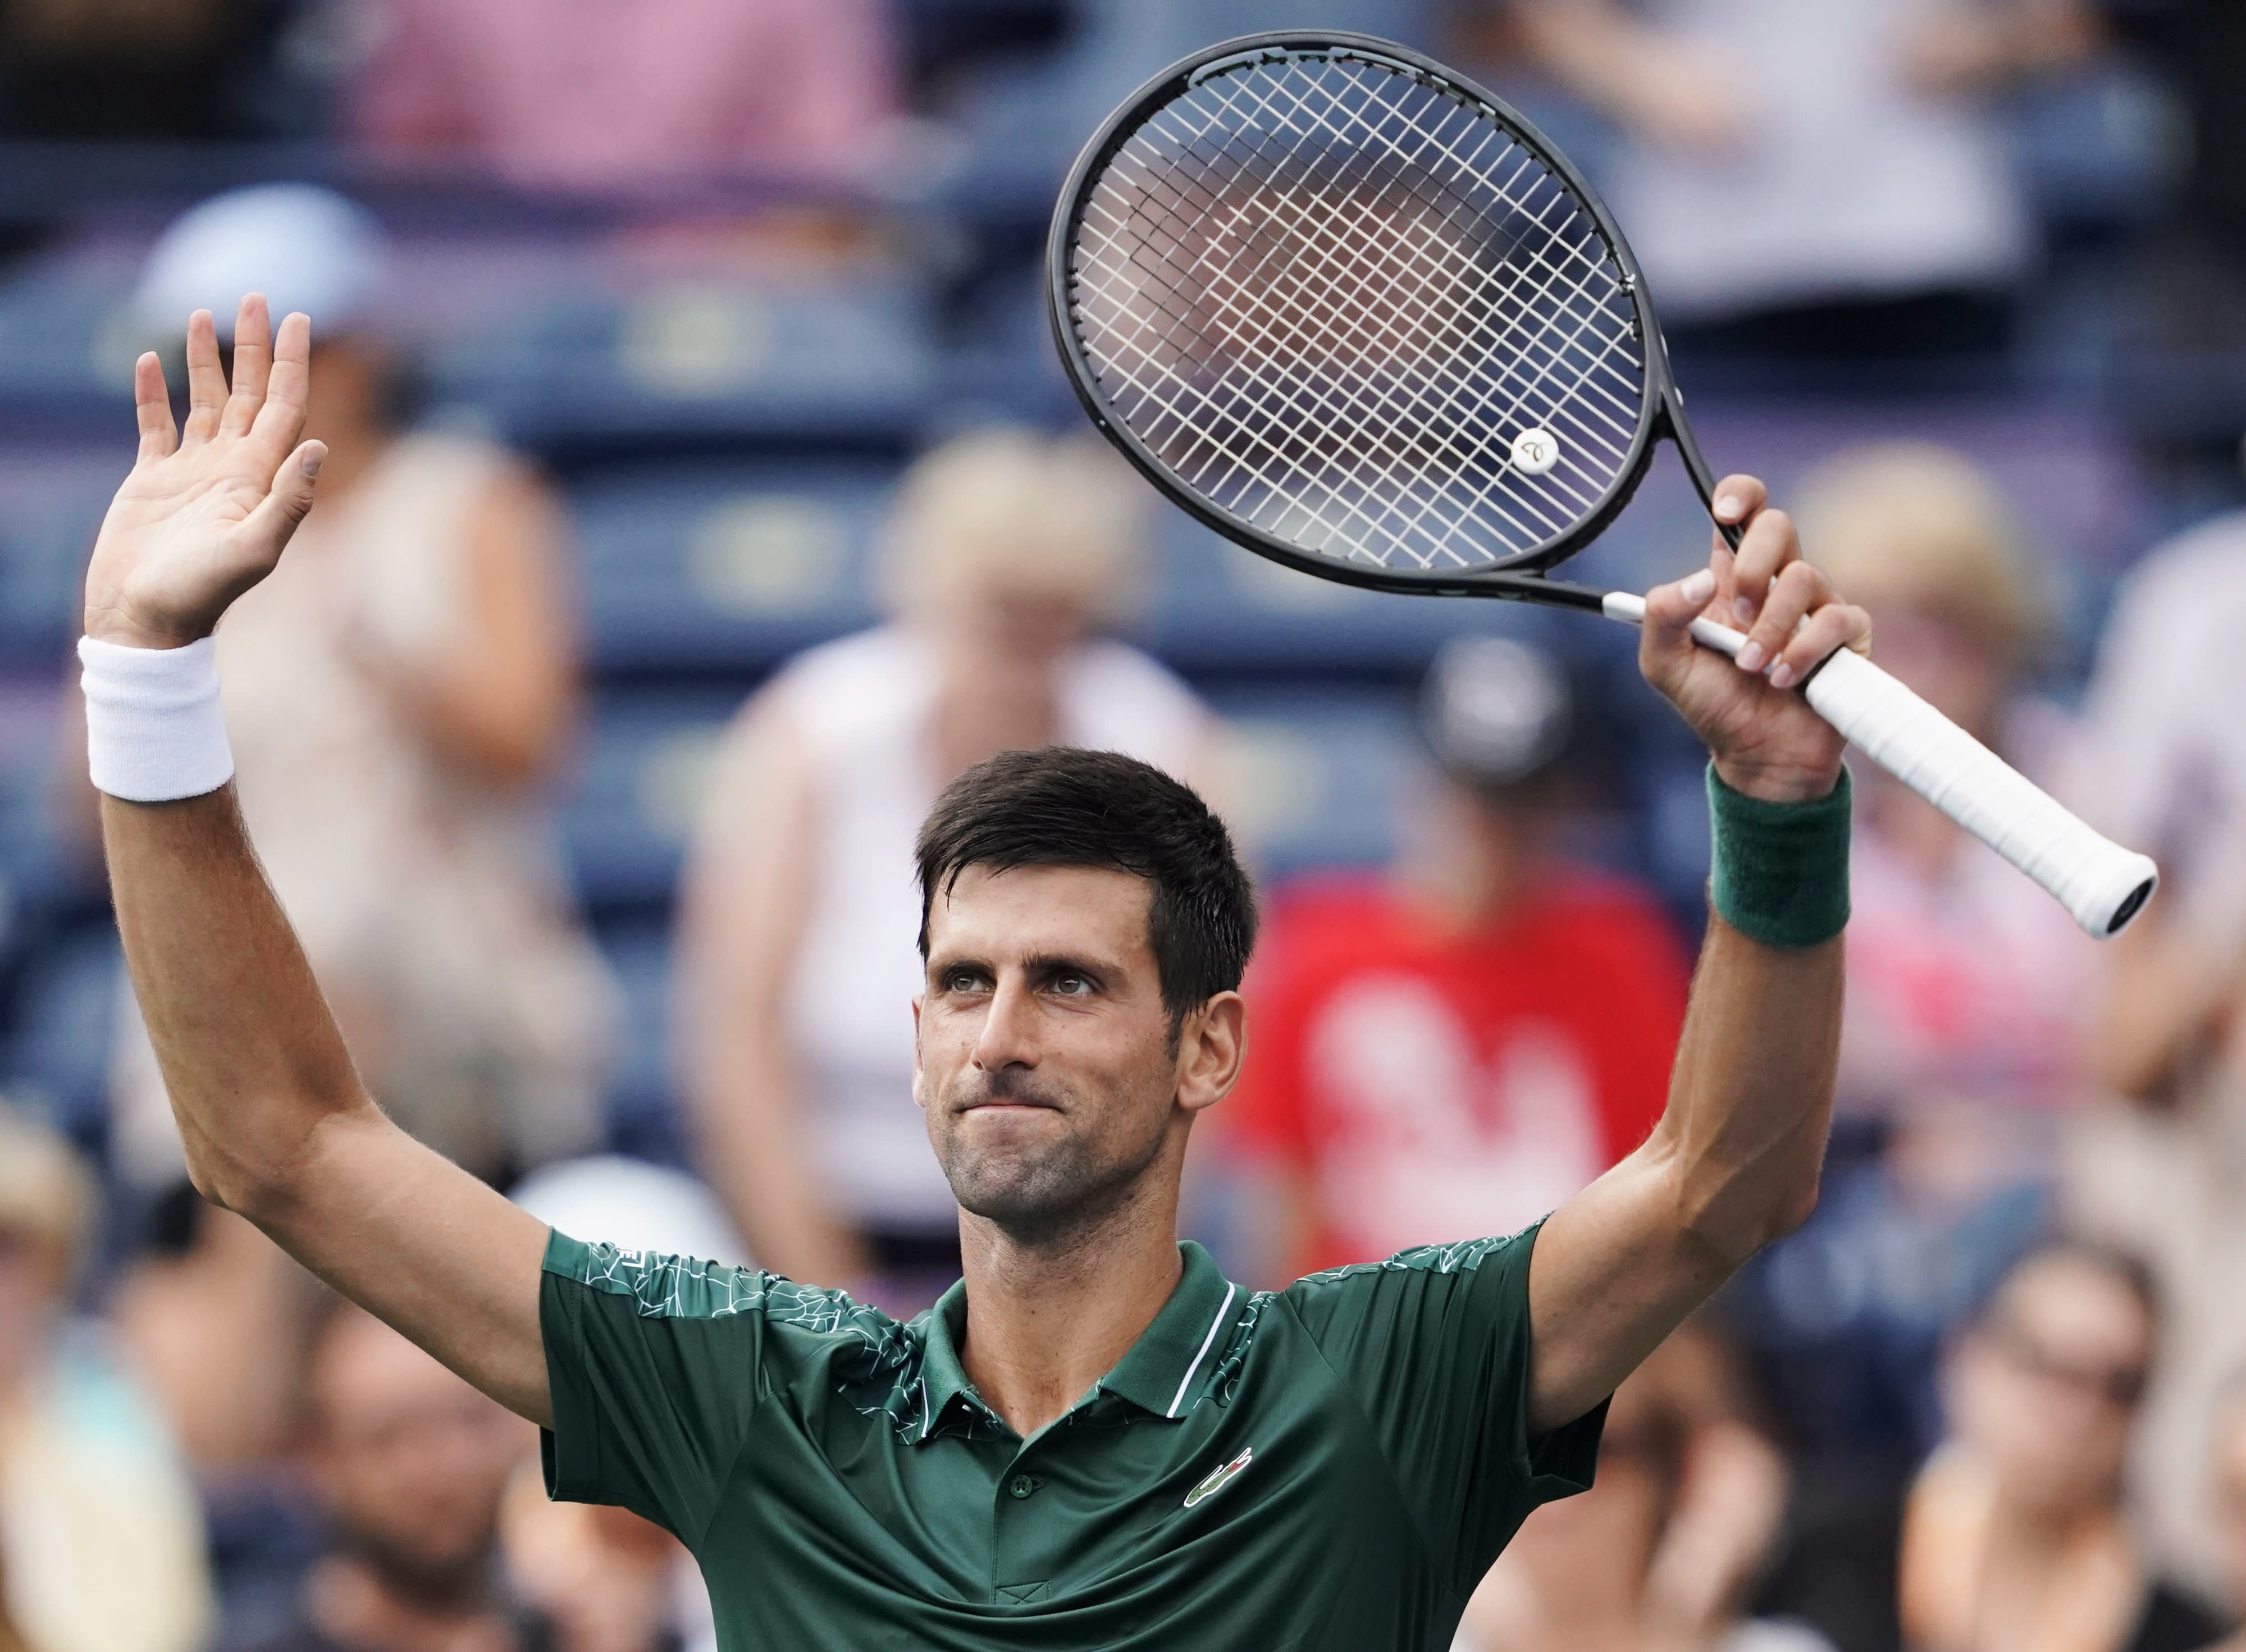 Novak Djokovic, of Serbia, celebrates defeating Peter Polansky, of Canada, at the Rogers Cup men's tennis tournament in Toronto, Wednesday, Aug. 8, 2018. (Mark Blinch/The Canadian Press via AP)